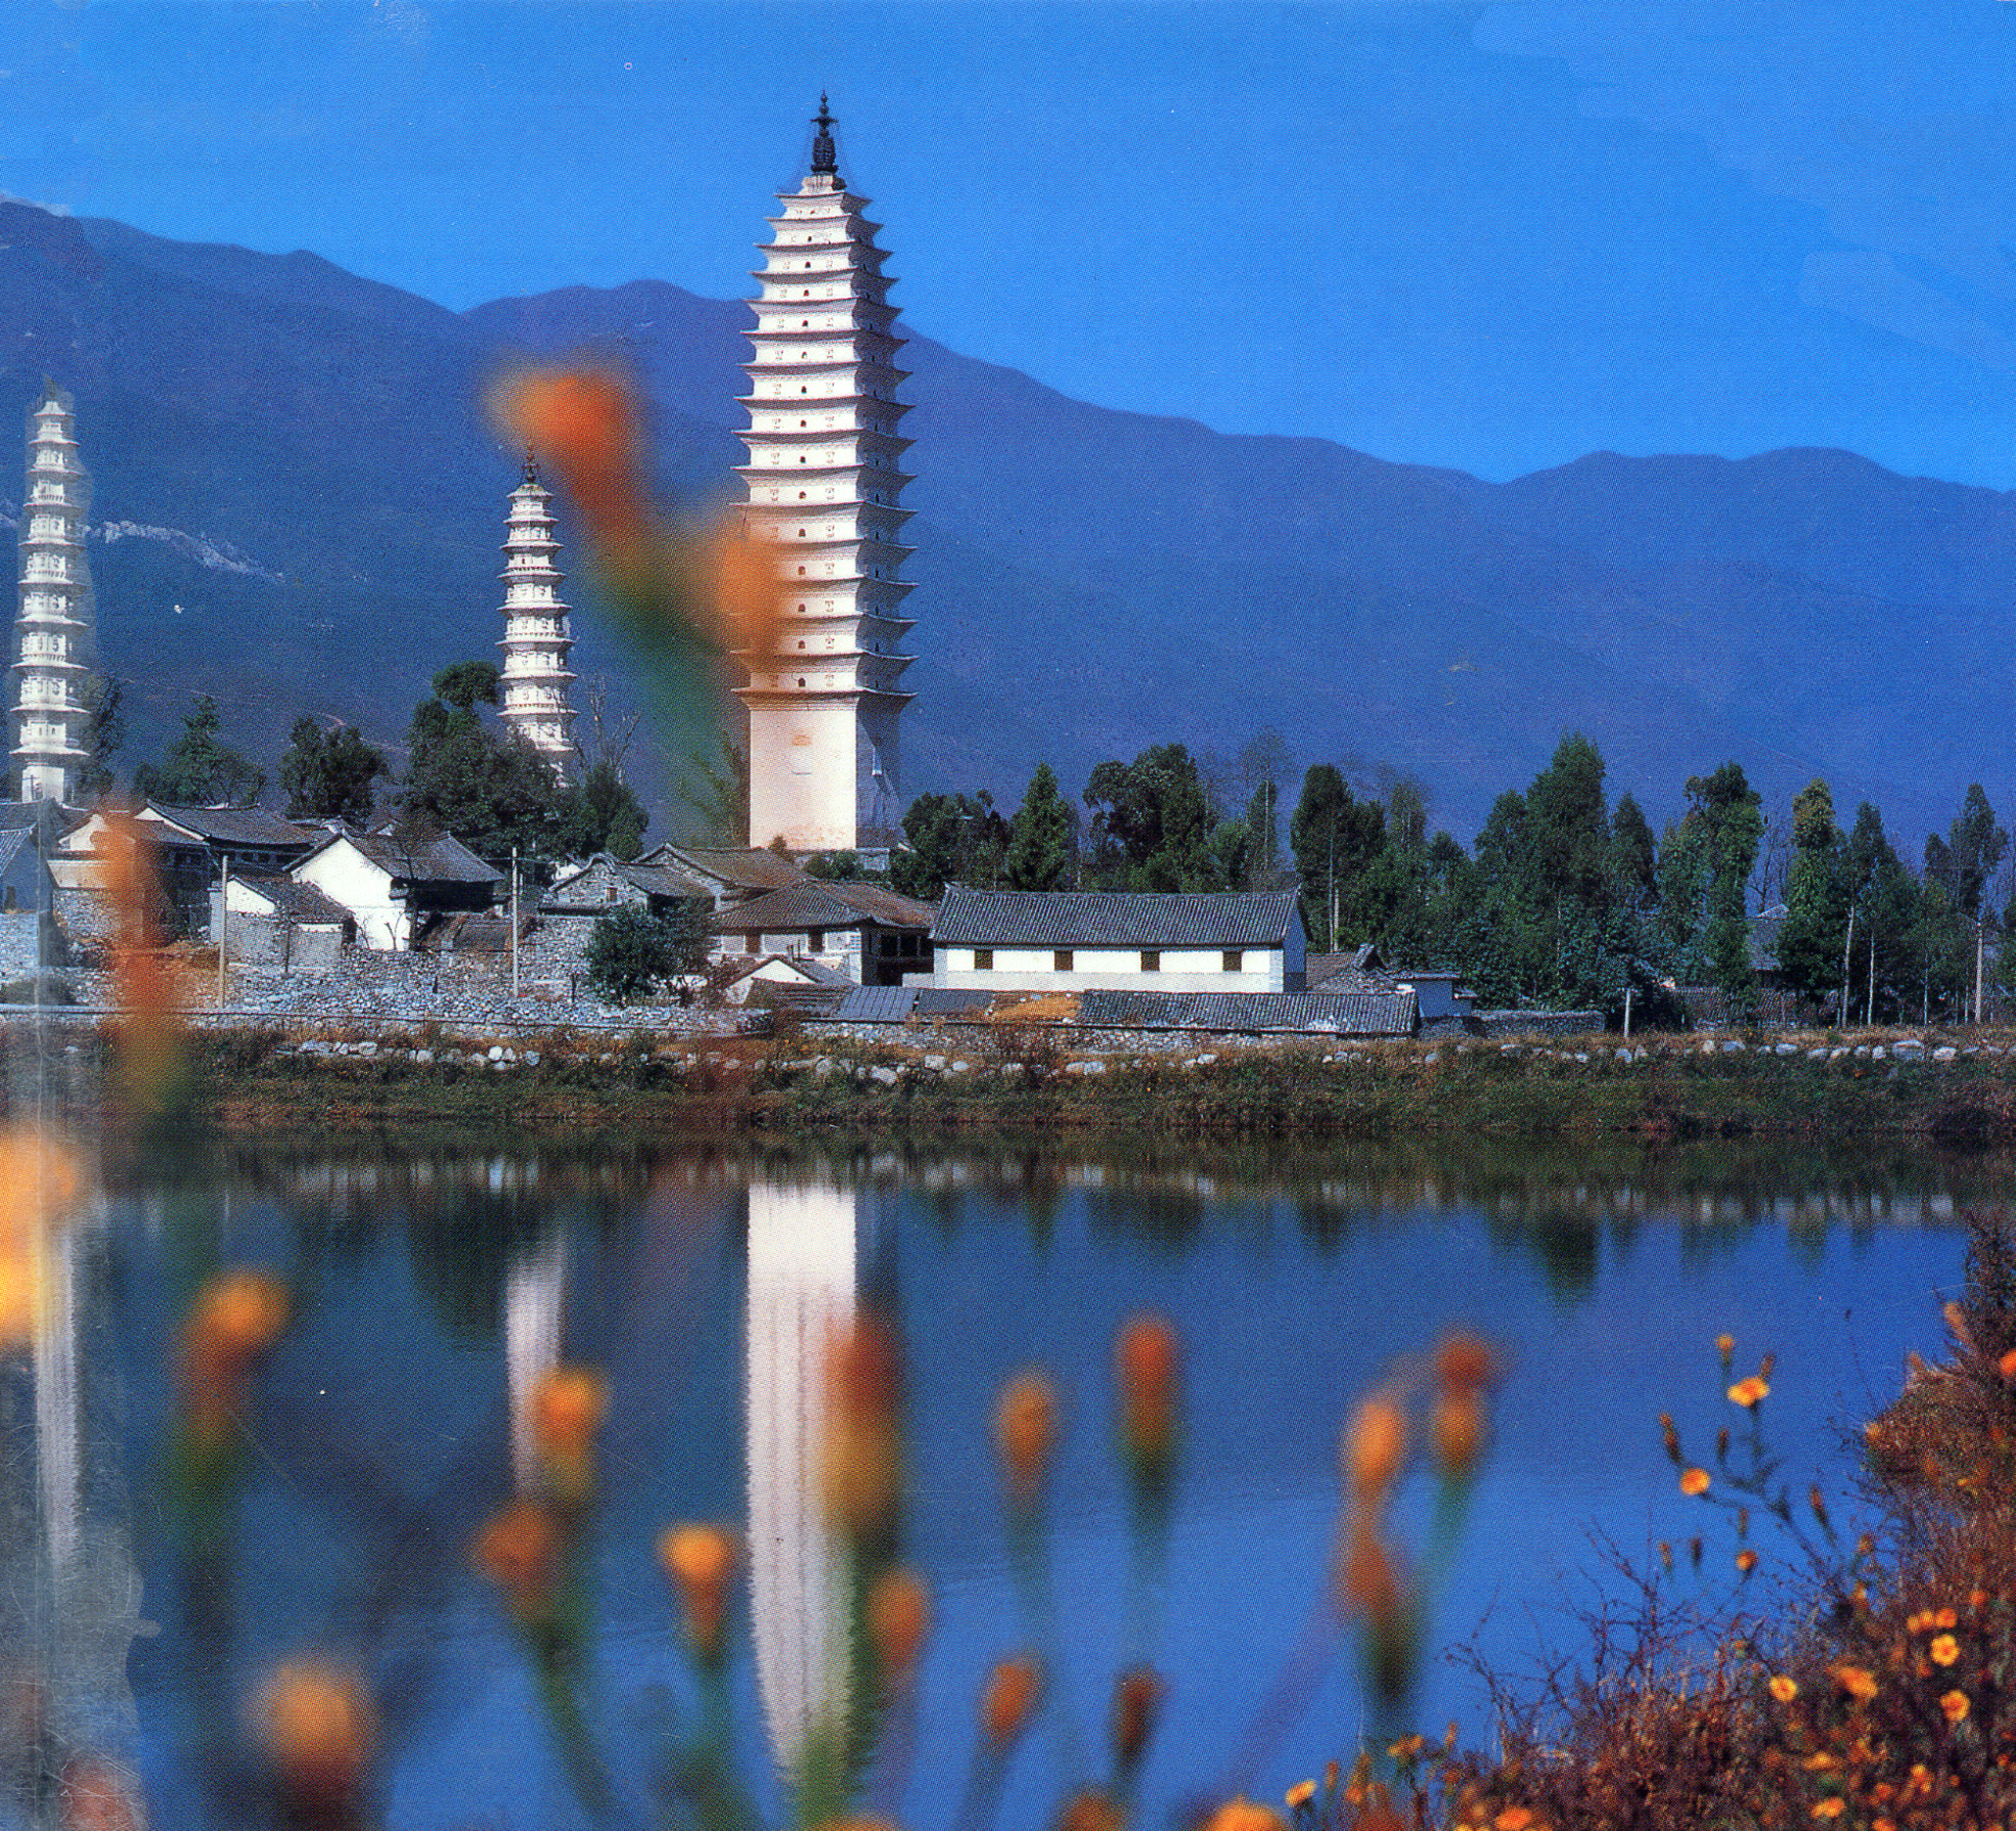 Performing Center in a Vertical Rise: Multilevel Pagodas in